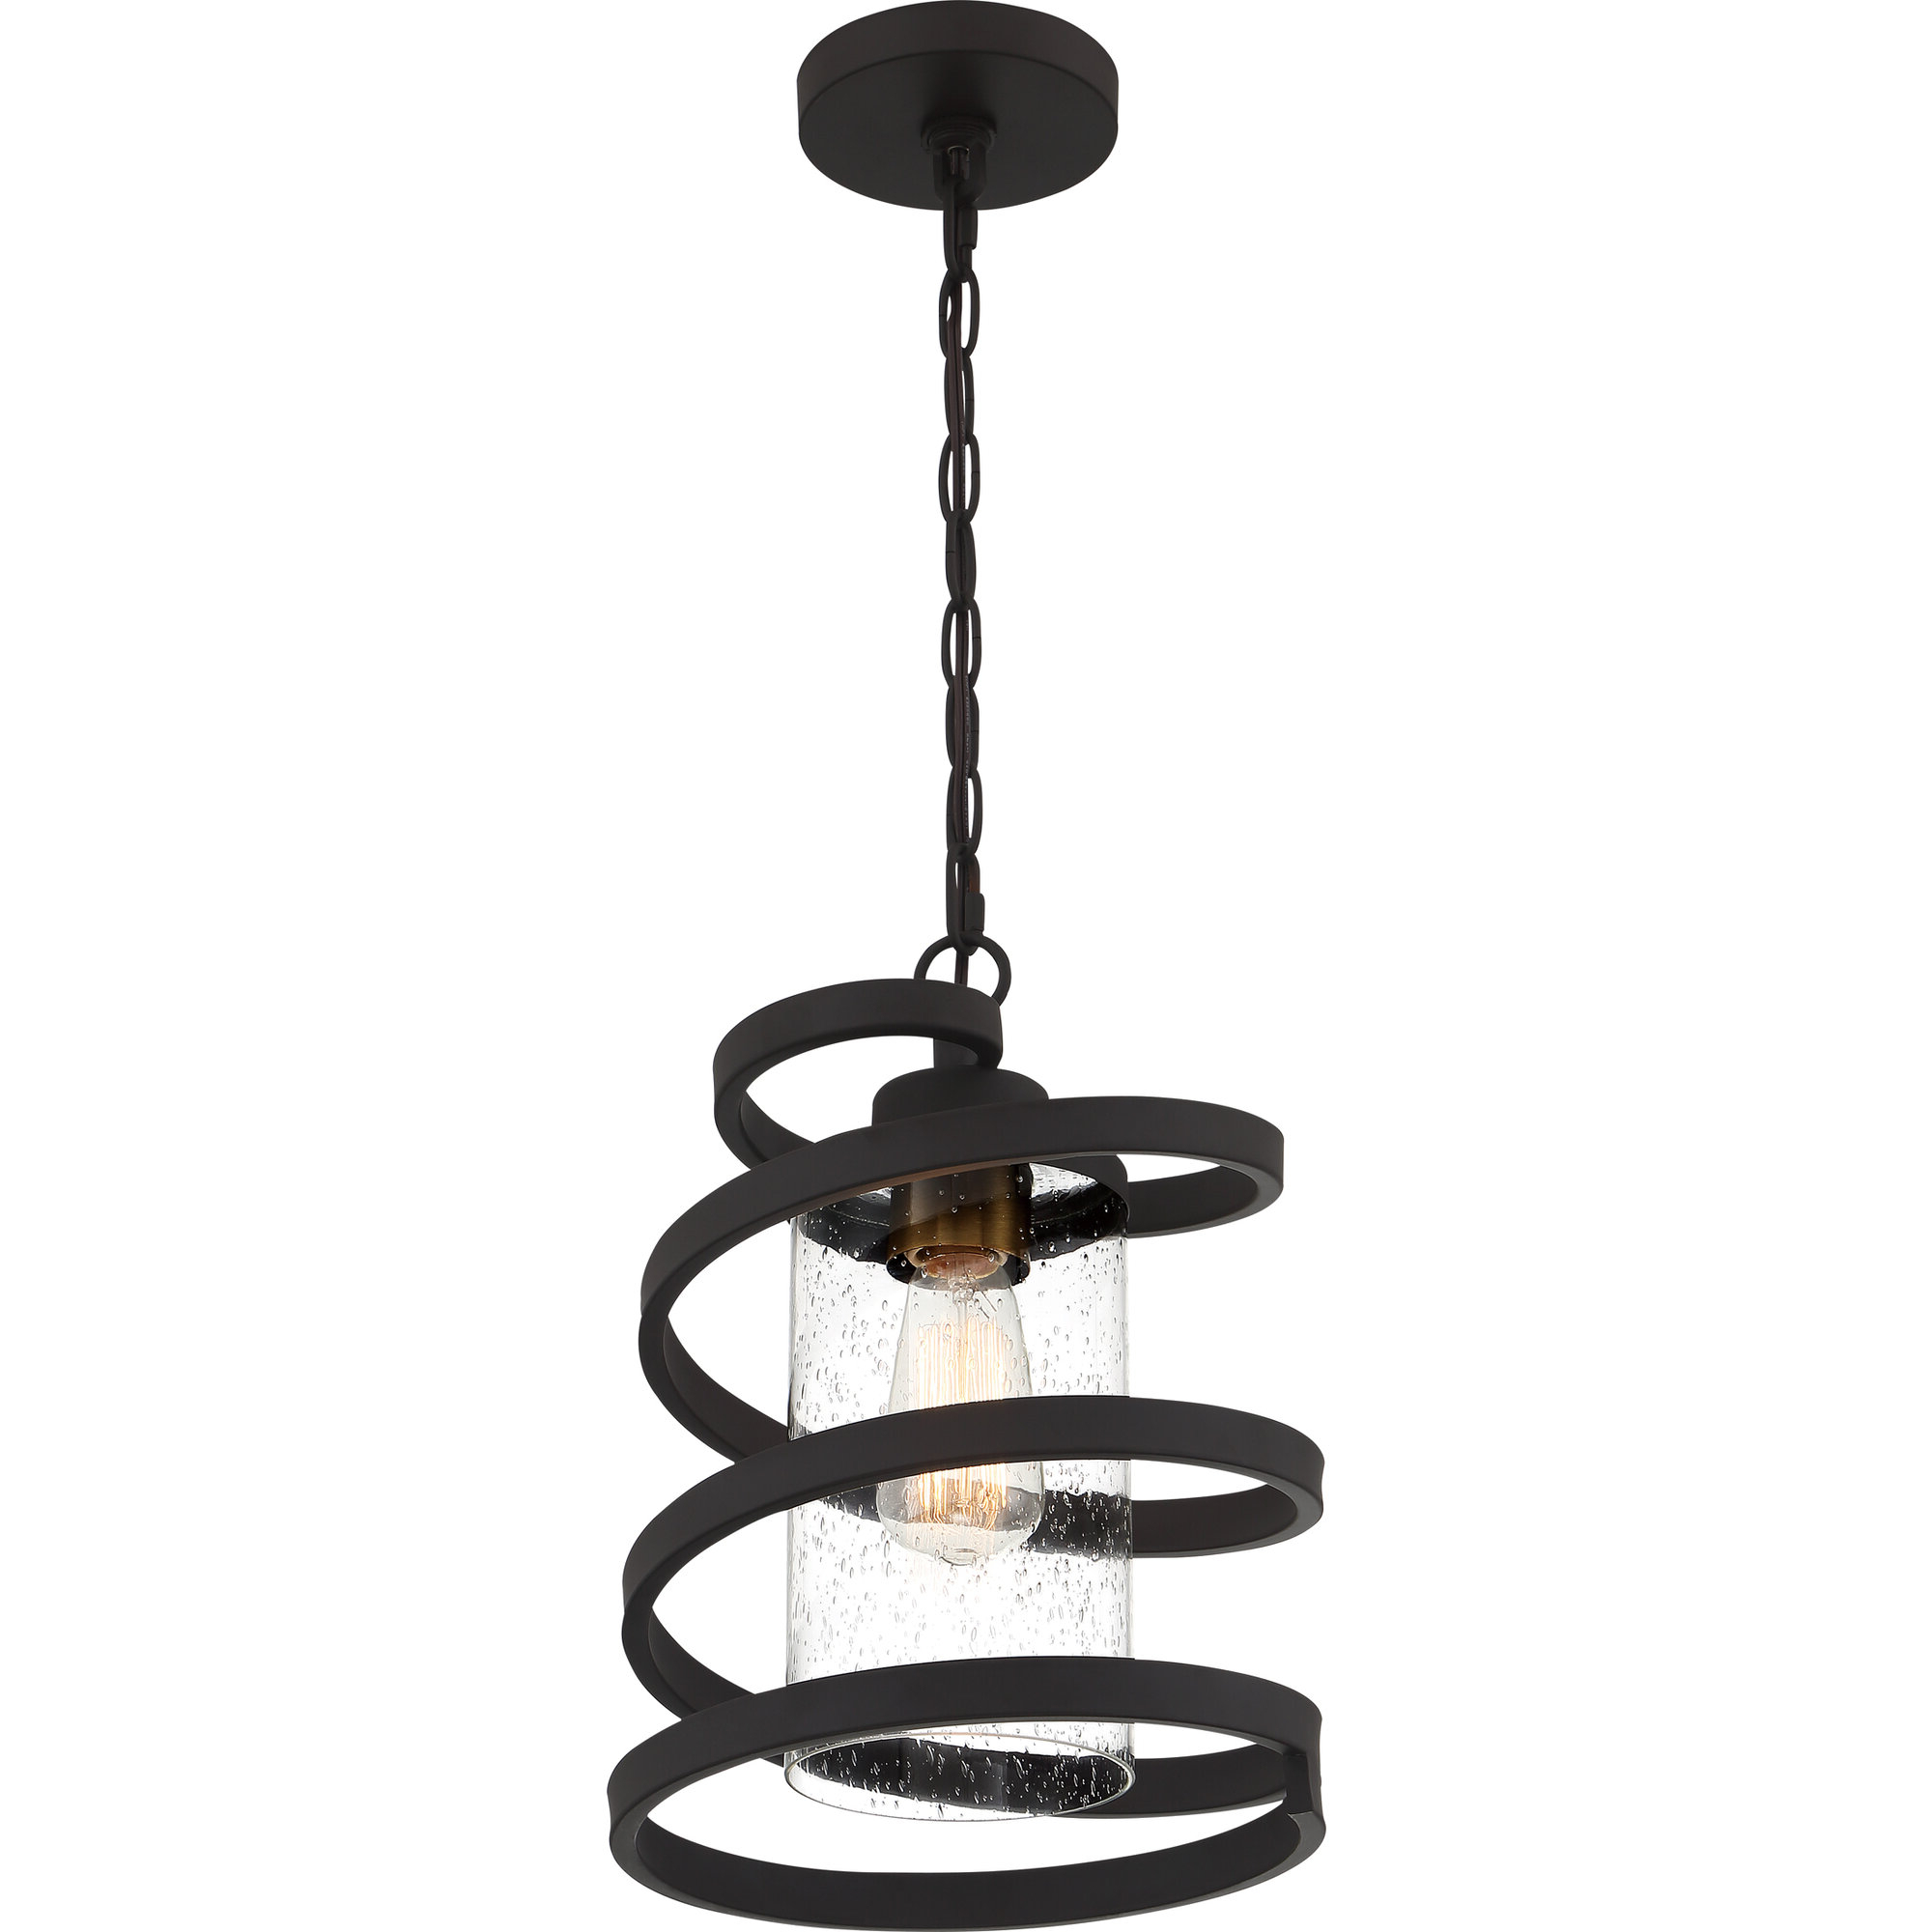 Fashionable Angelina 1 Light Single Cylinder Pendants Within Details About Ivy Bronx Odis 1 Light Geometric Pendant (View 18 of 25)